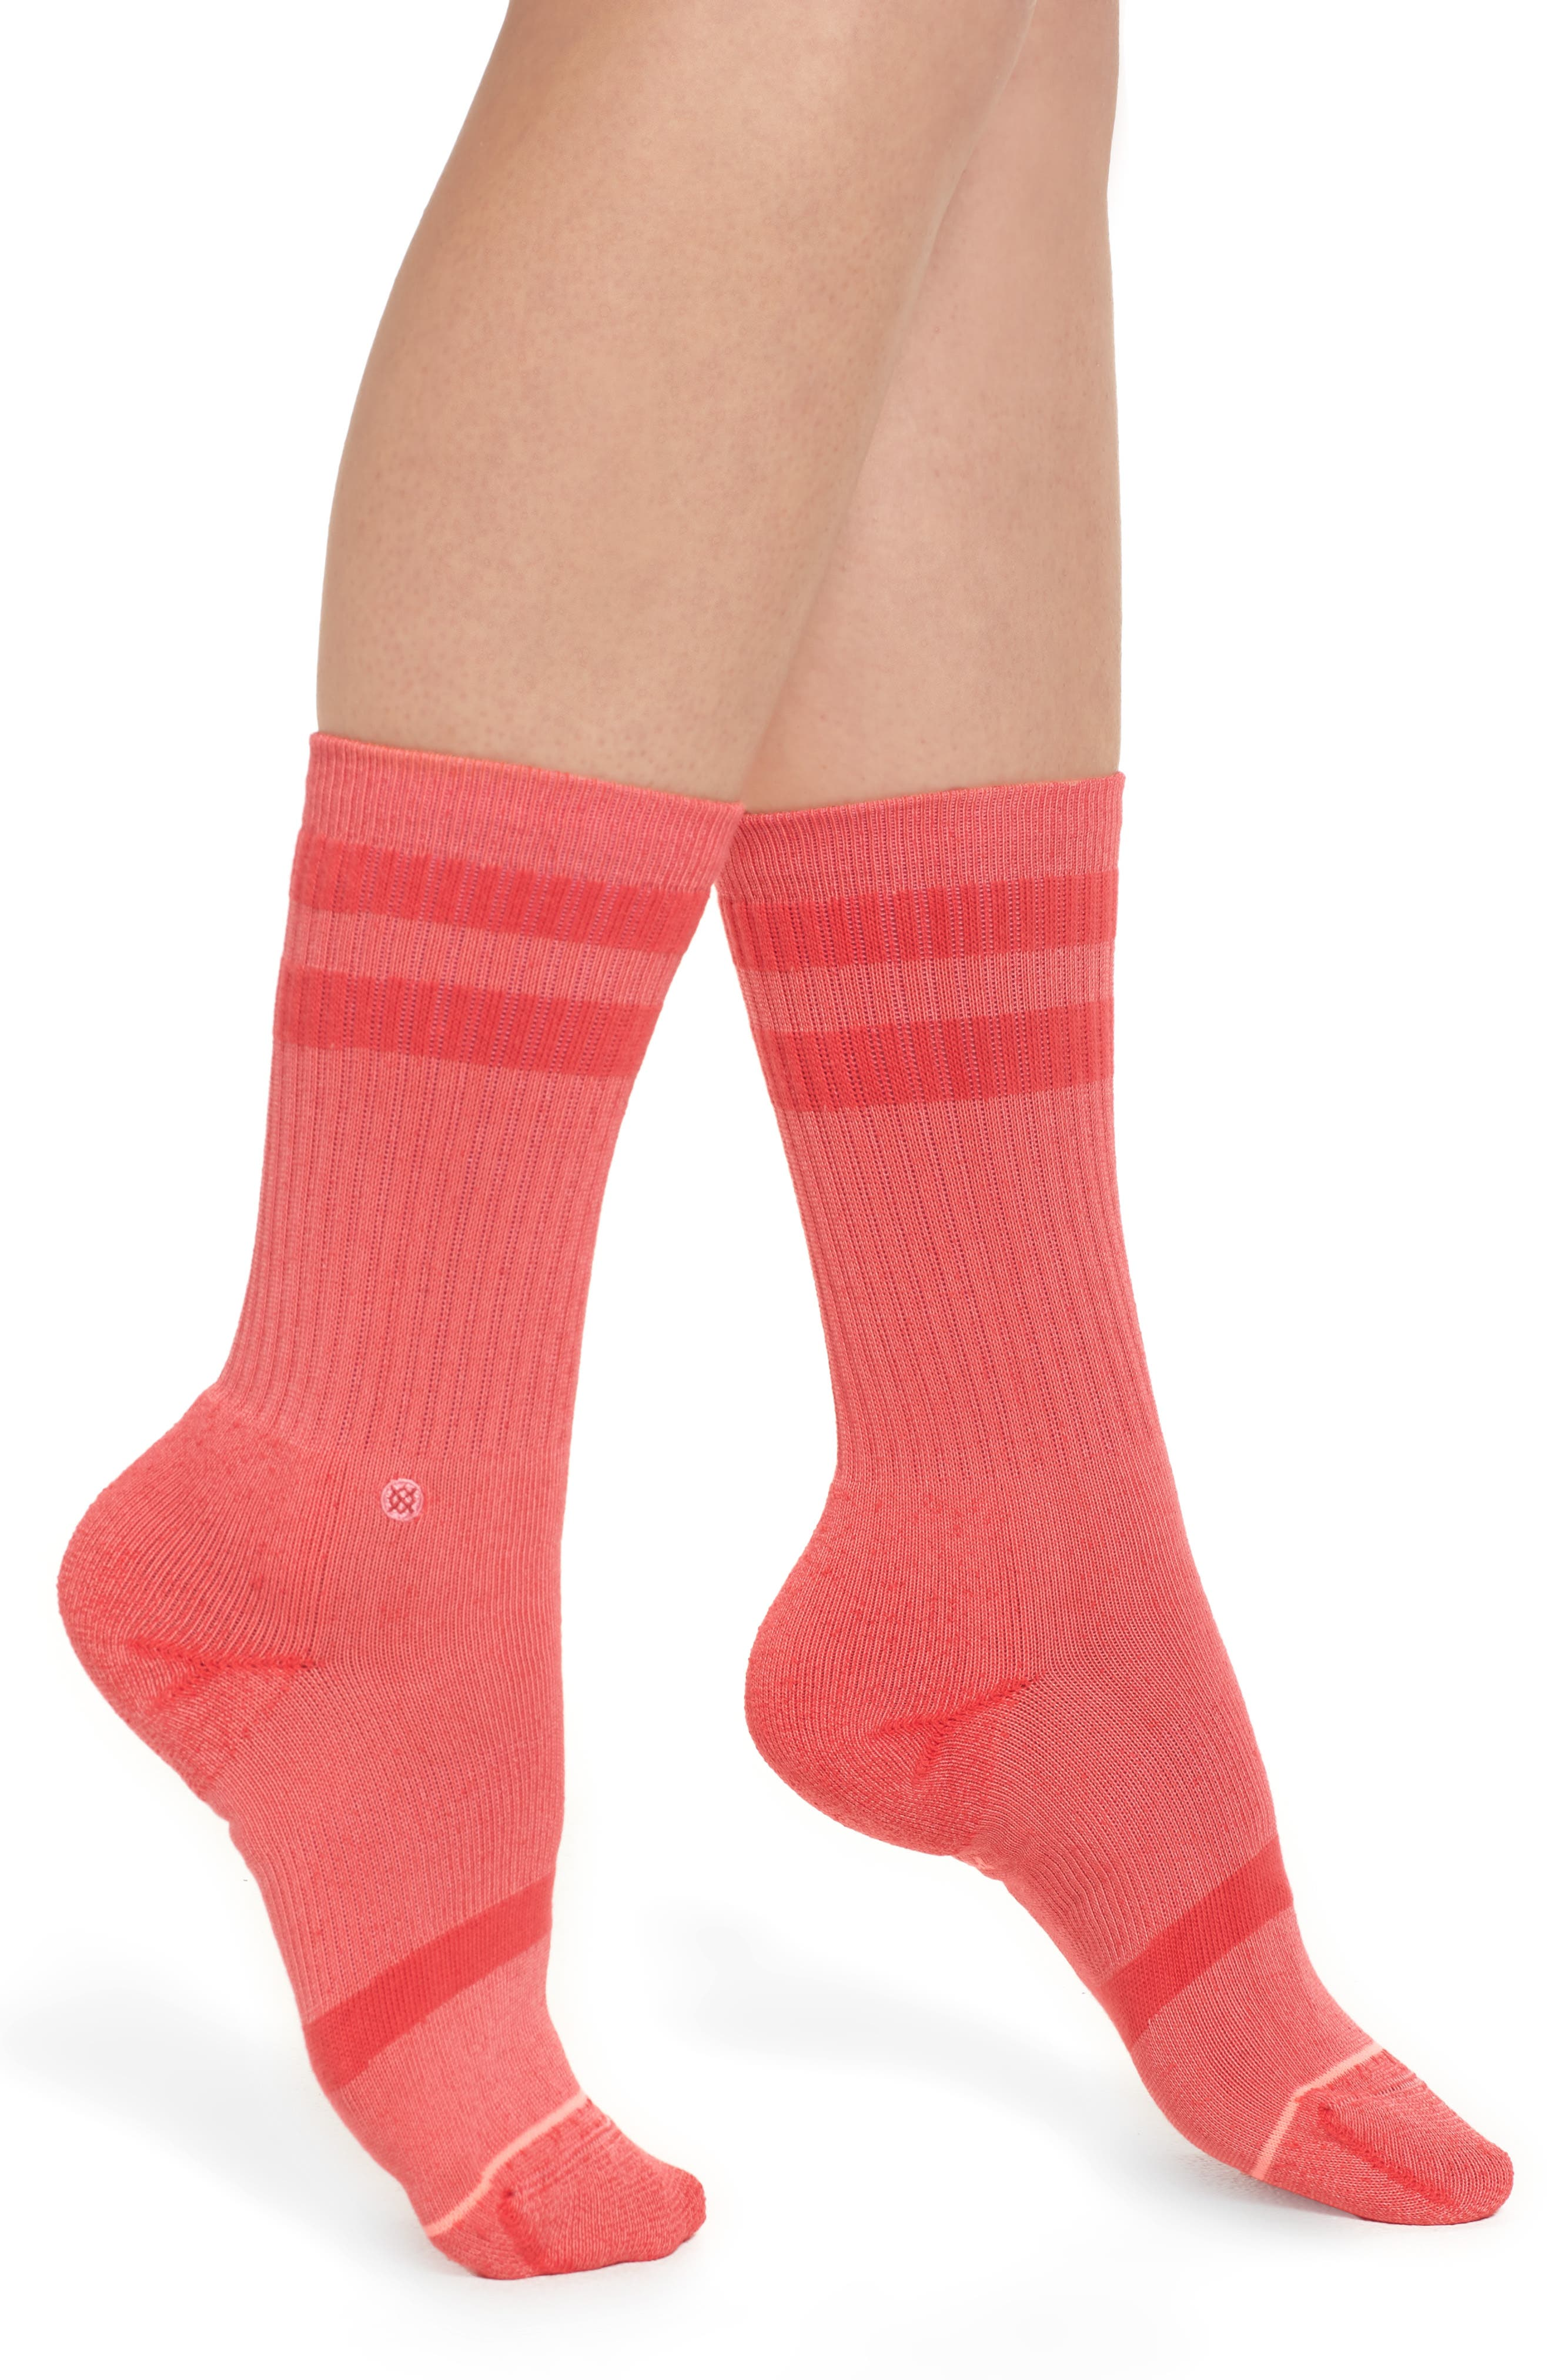 Classic Uncommon Crew Socks,                             Main thumbnail 1, color,                             Red